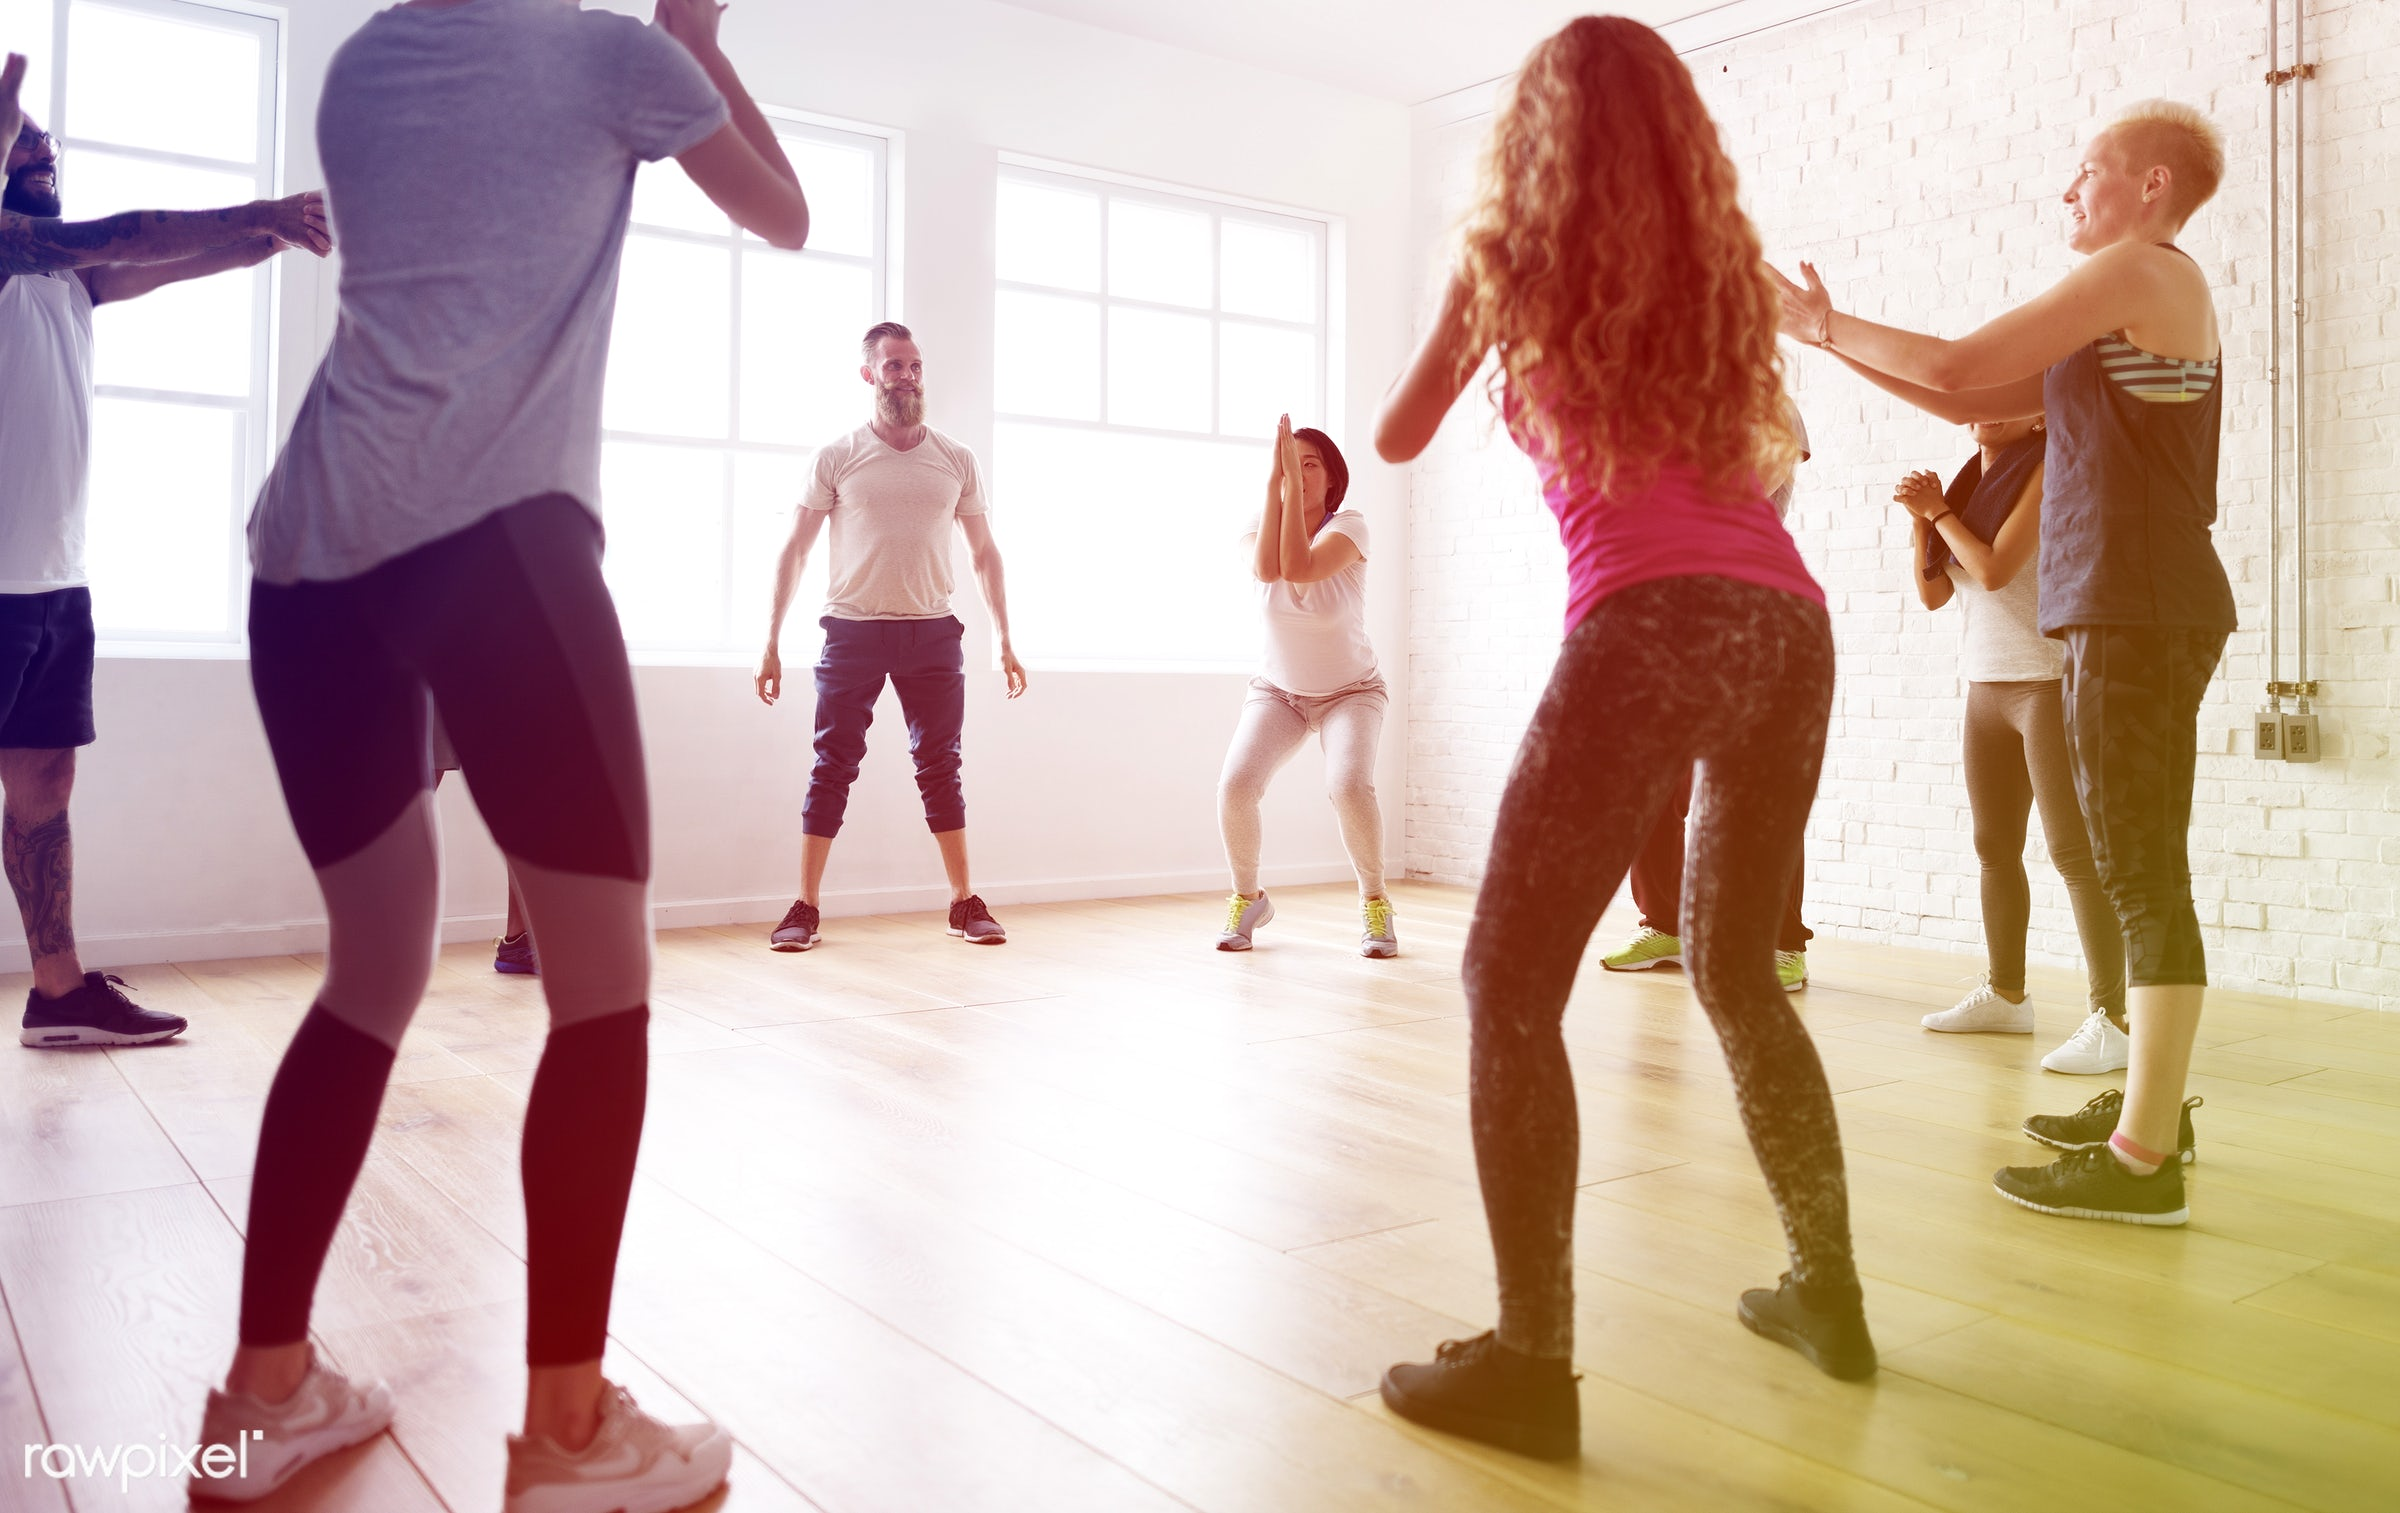 studio, physical, diverse, recreation, people, stretching, lomo, practicing, lifestyle, gym, flexibility, aerobics, class,...